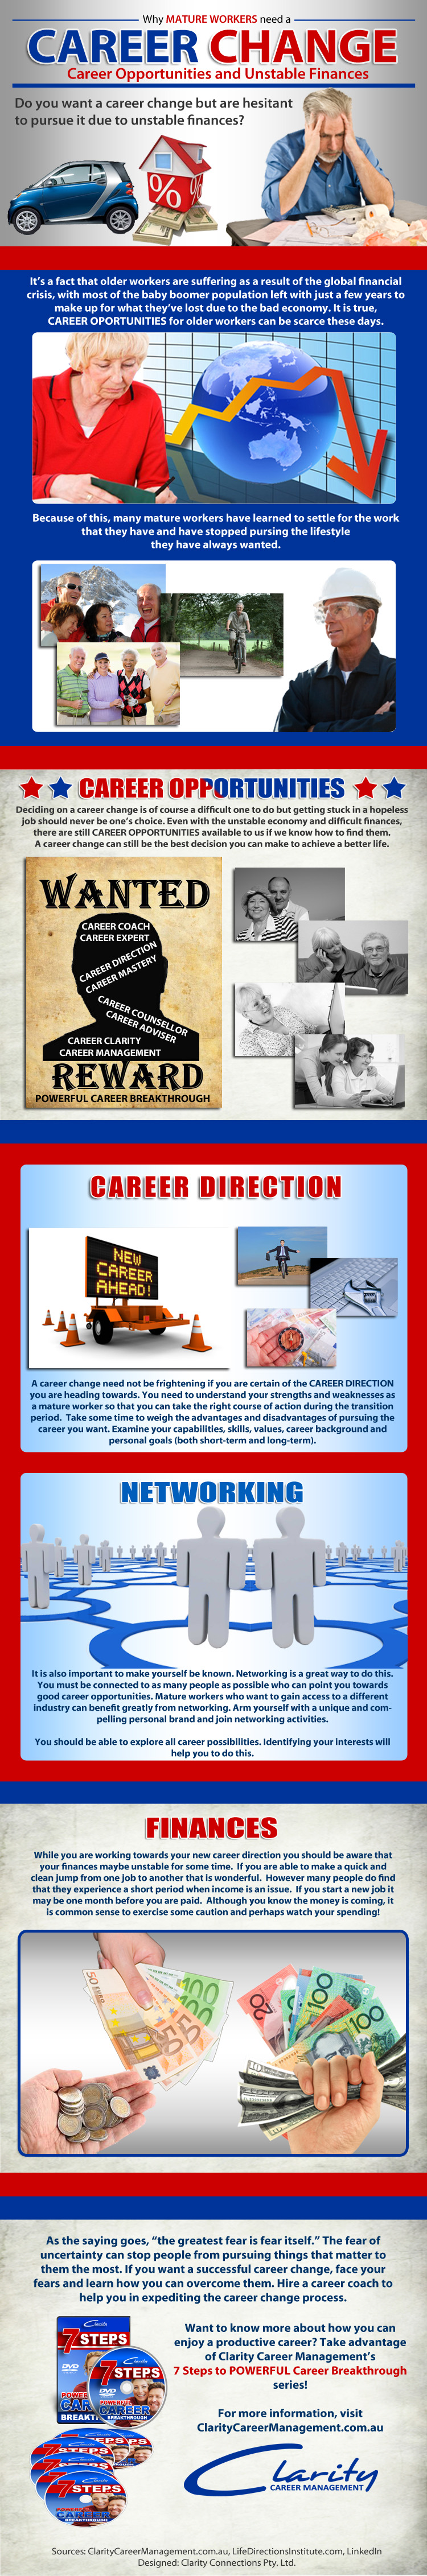 best images about career change infographics facts on 17 best images about career change infographics facts mobile app information age and career planning